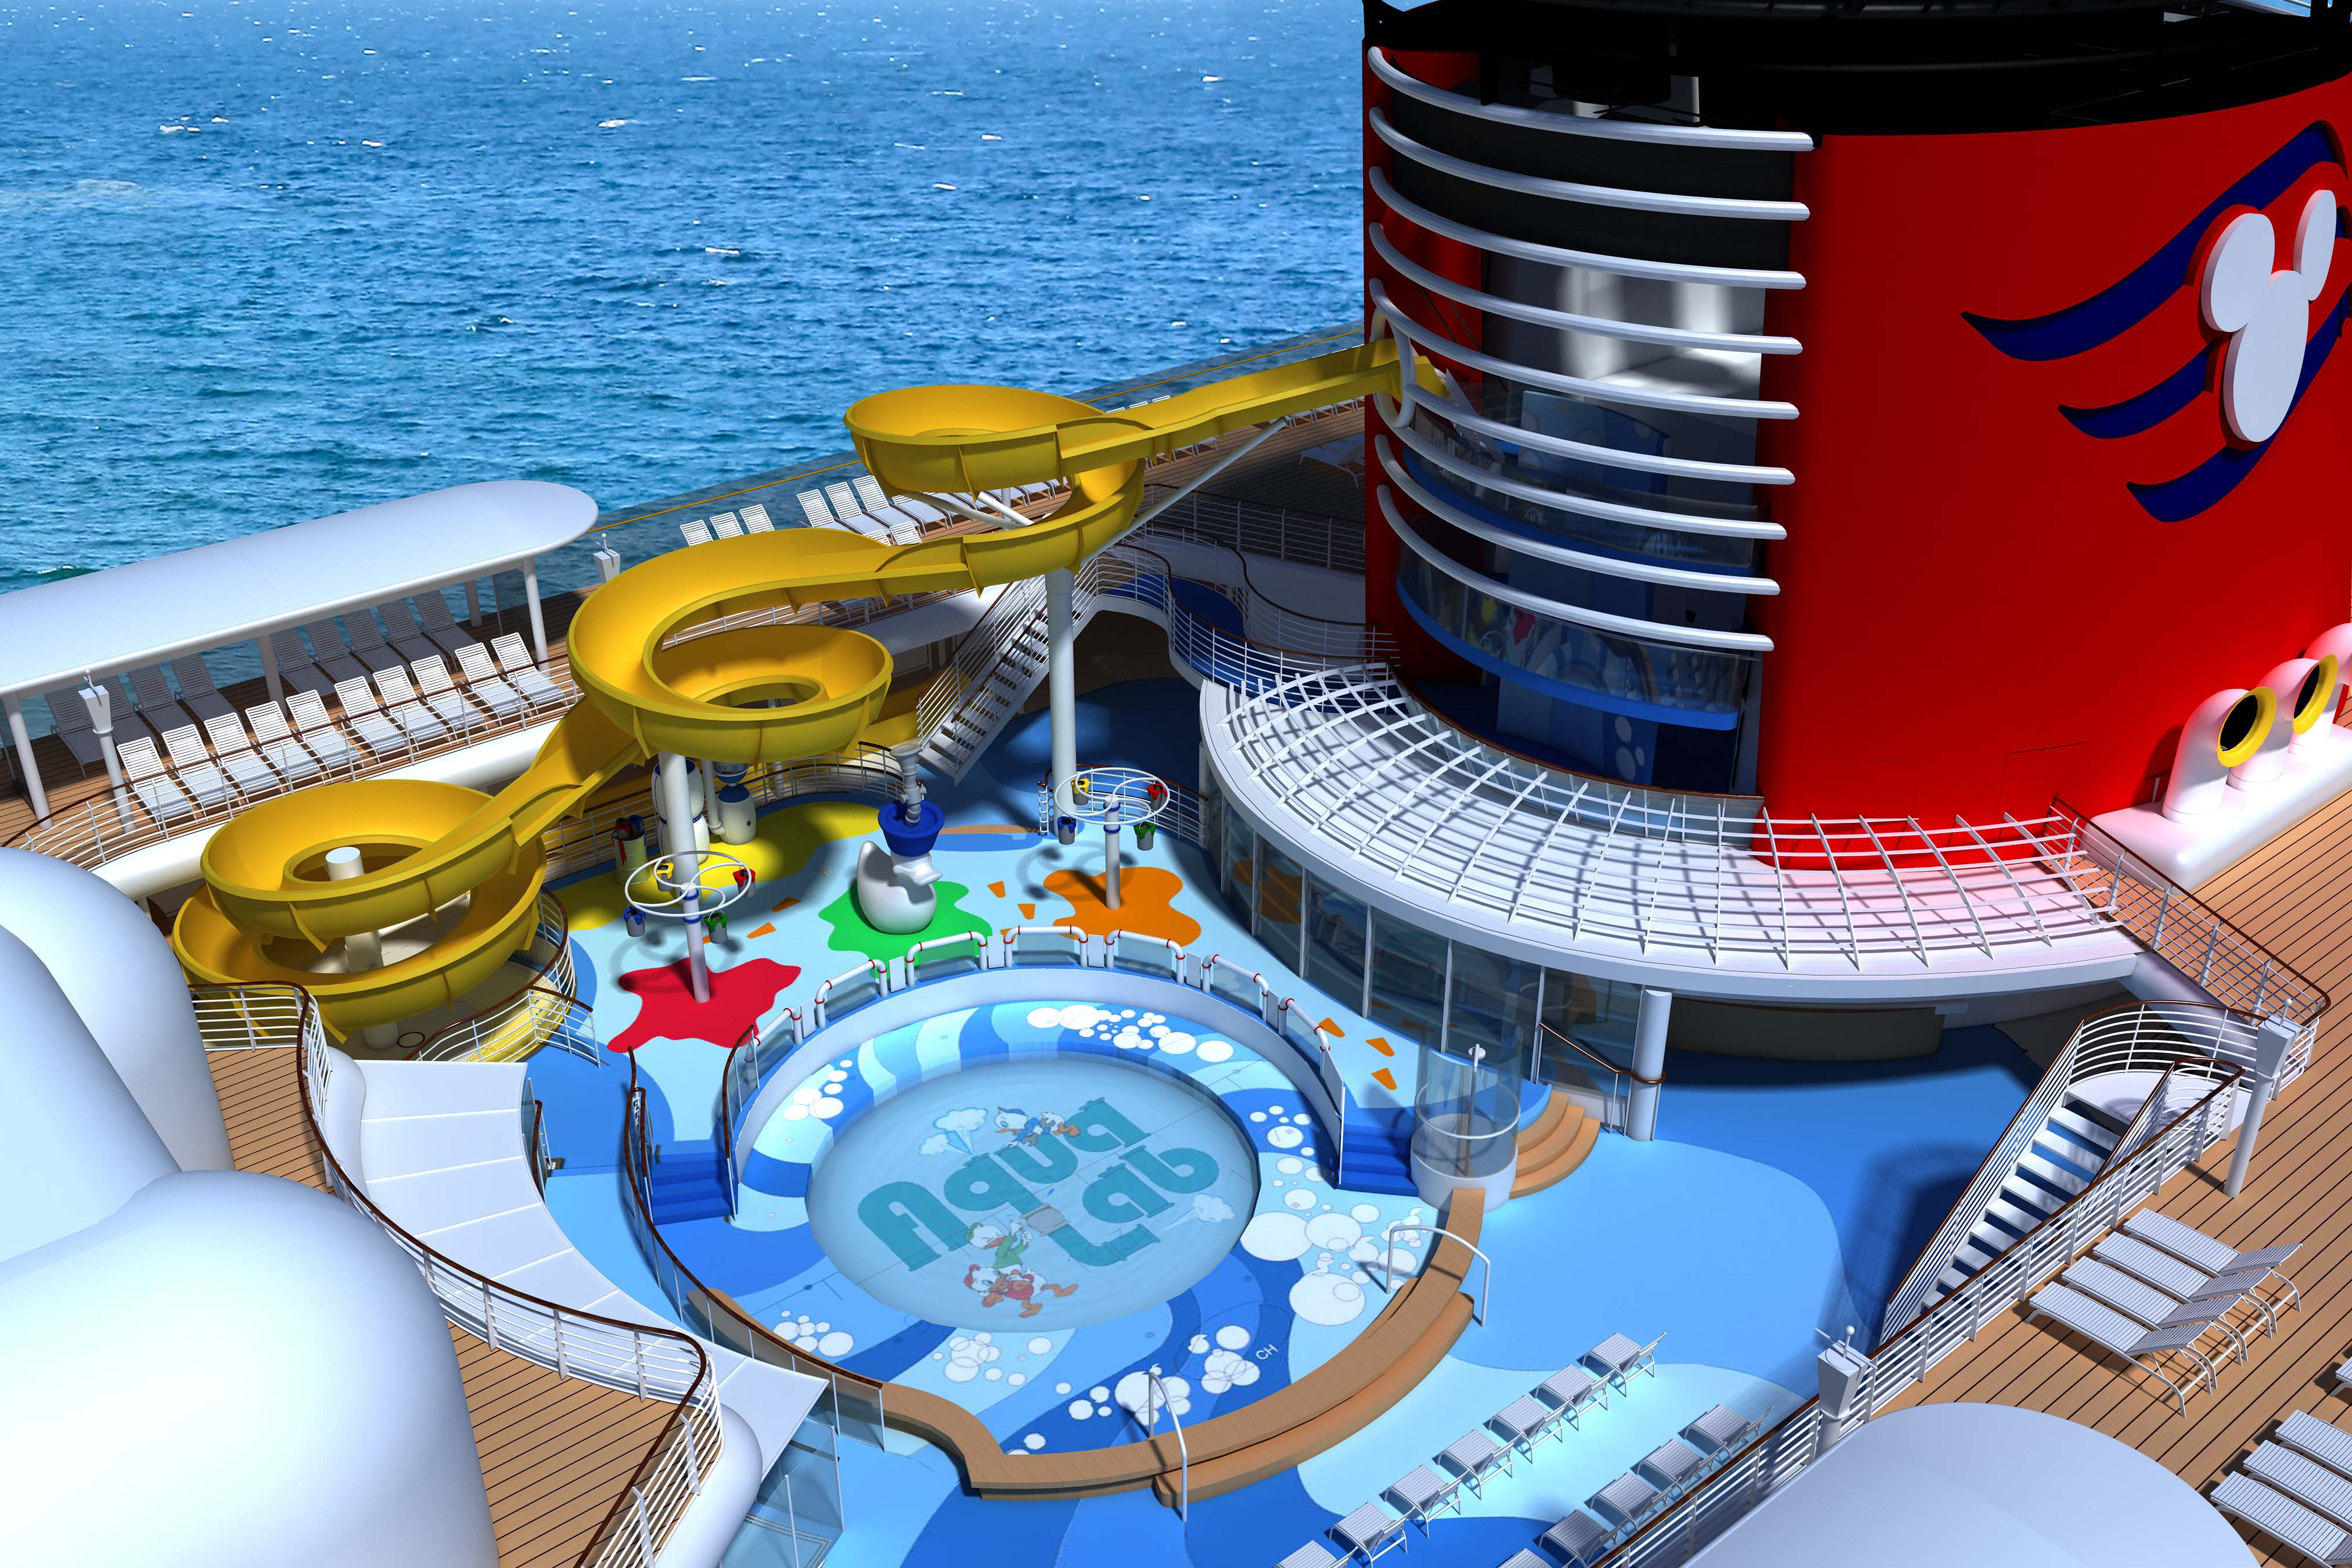 Getting Wetter Has Never Been Better Aboard Disney Magic With New - Disney magic cruise ship pictures